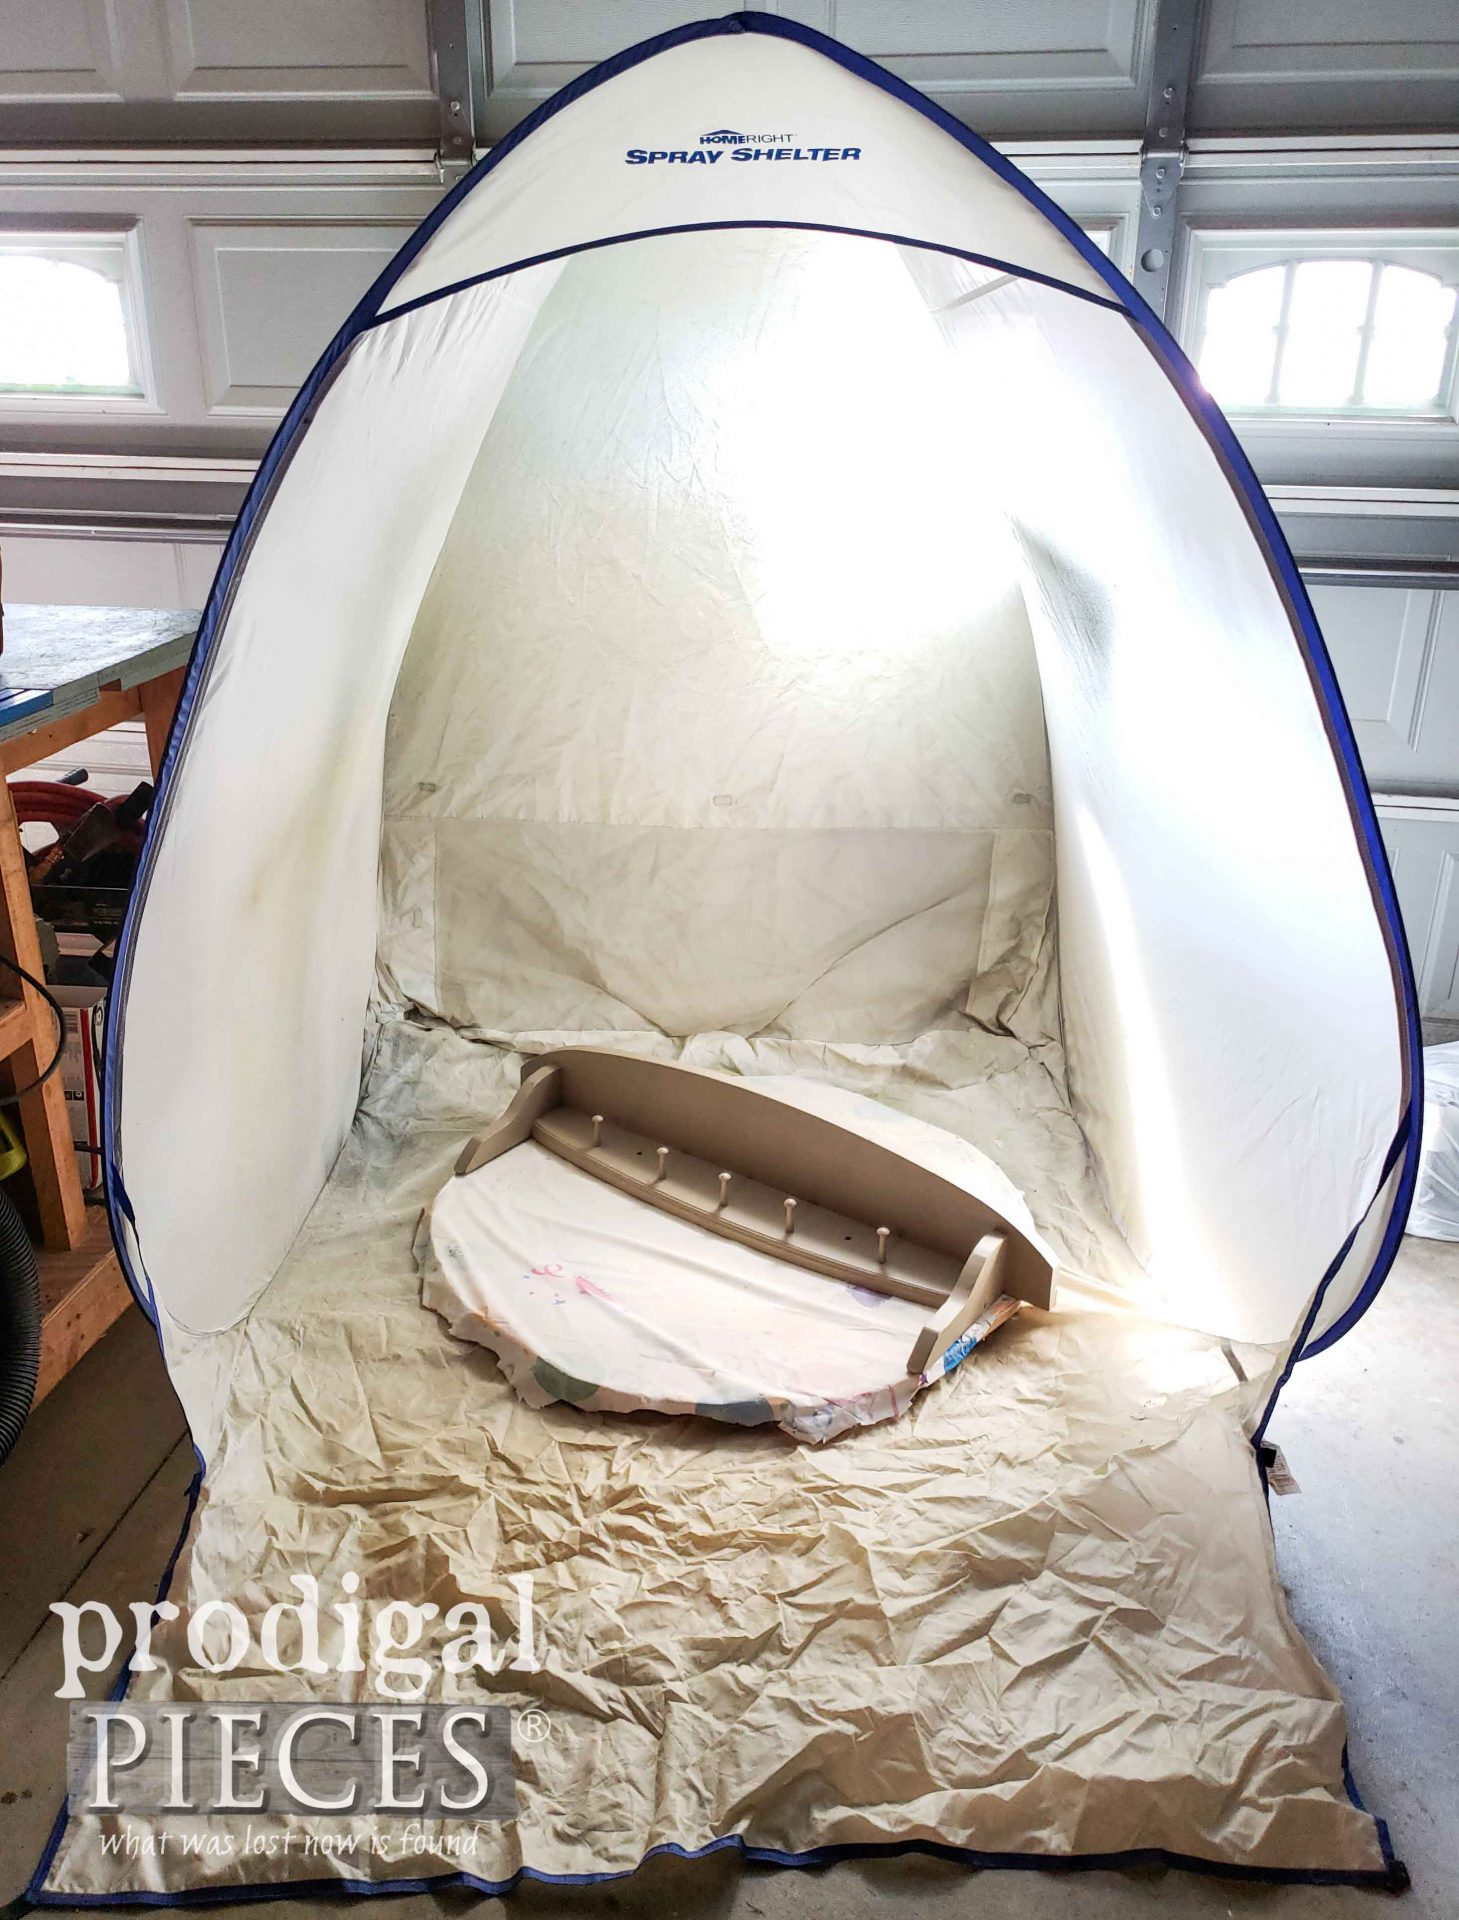 HomeRight Medium Spray Shelter for Creating Home Decor | prodigalpieces.com